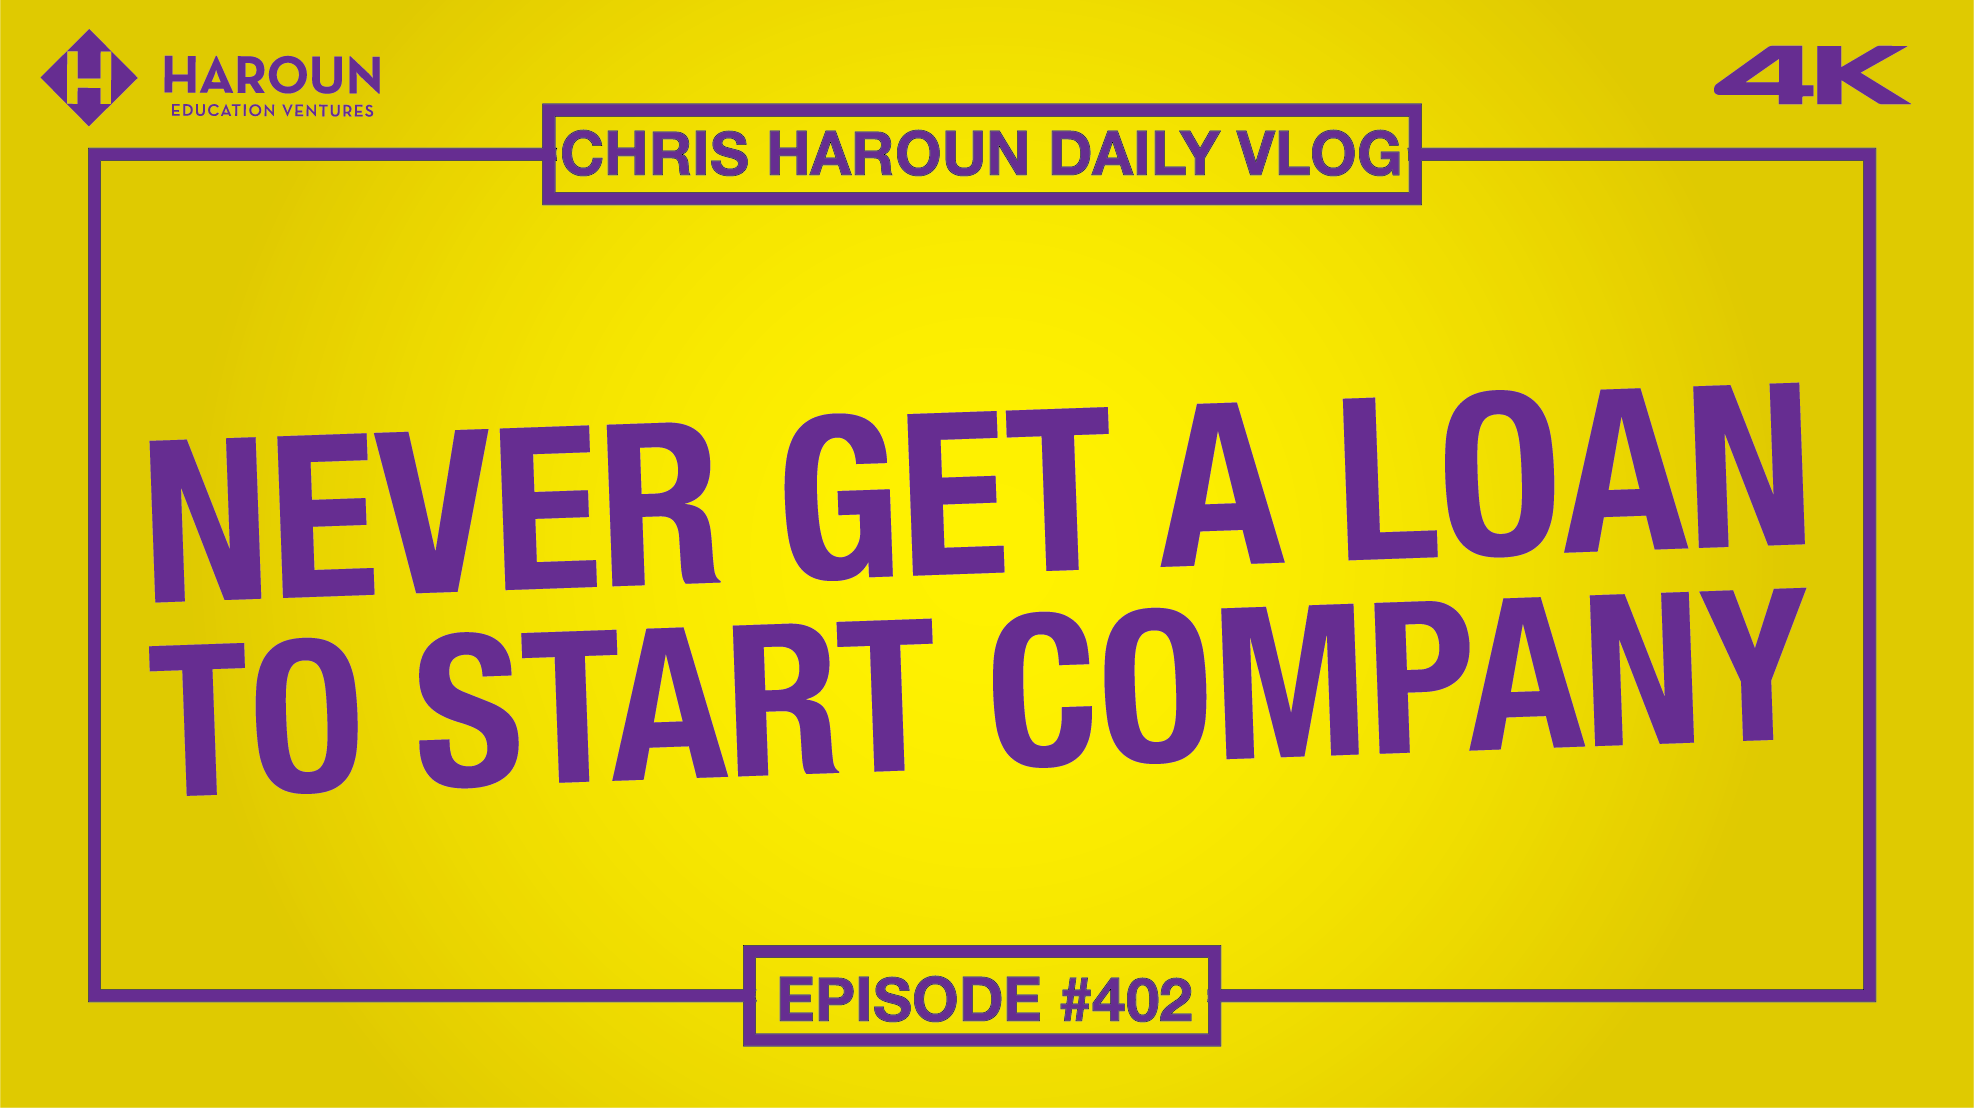 VLOG_402_9_6_2019_Never Get a Loan to Start Company .png